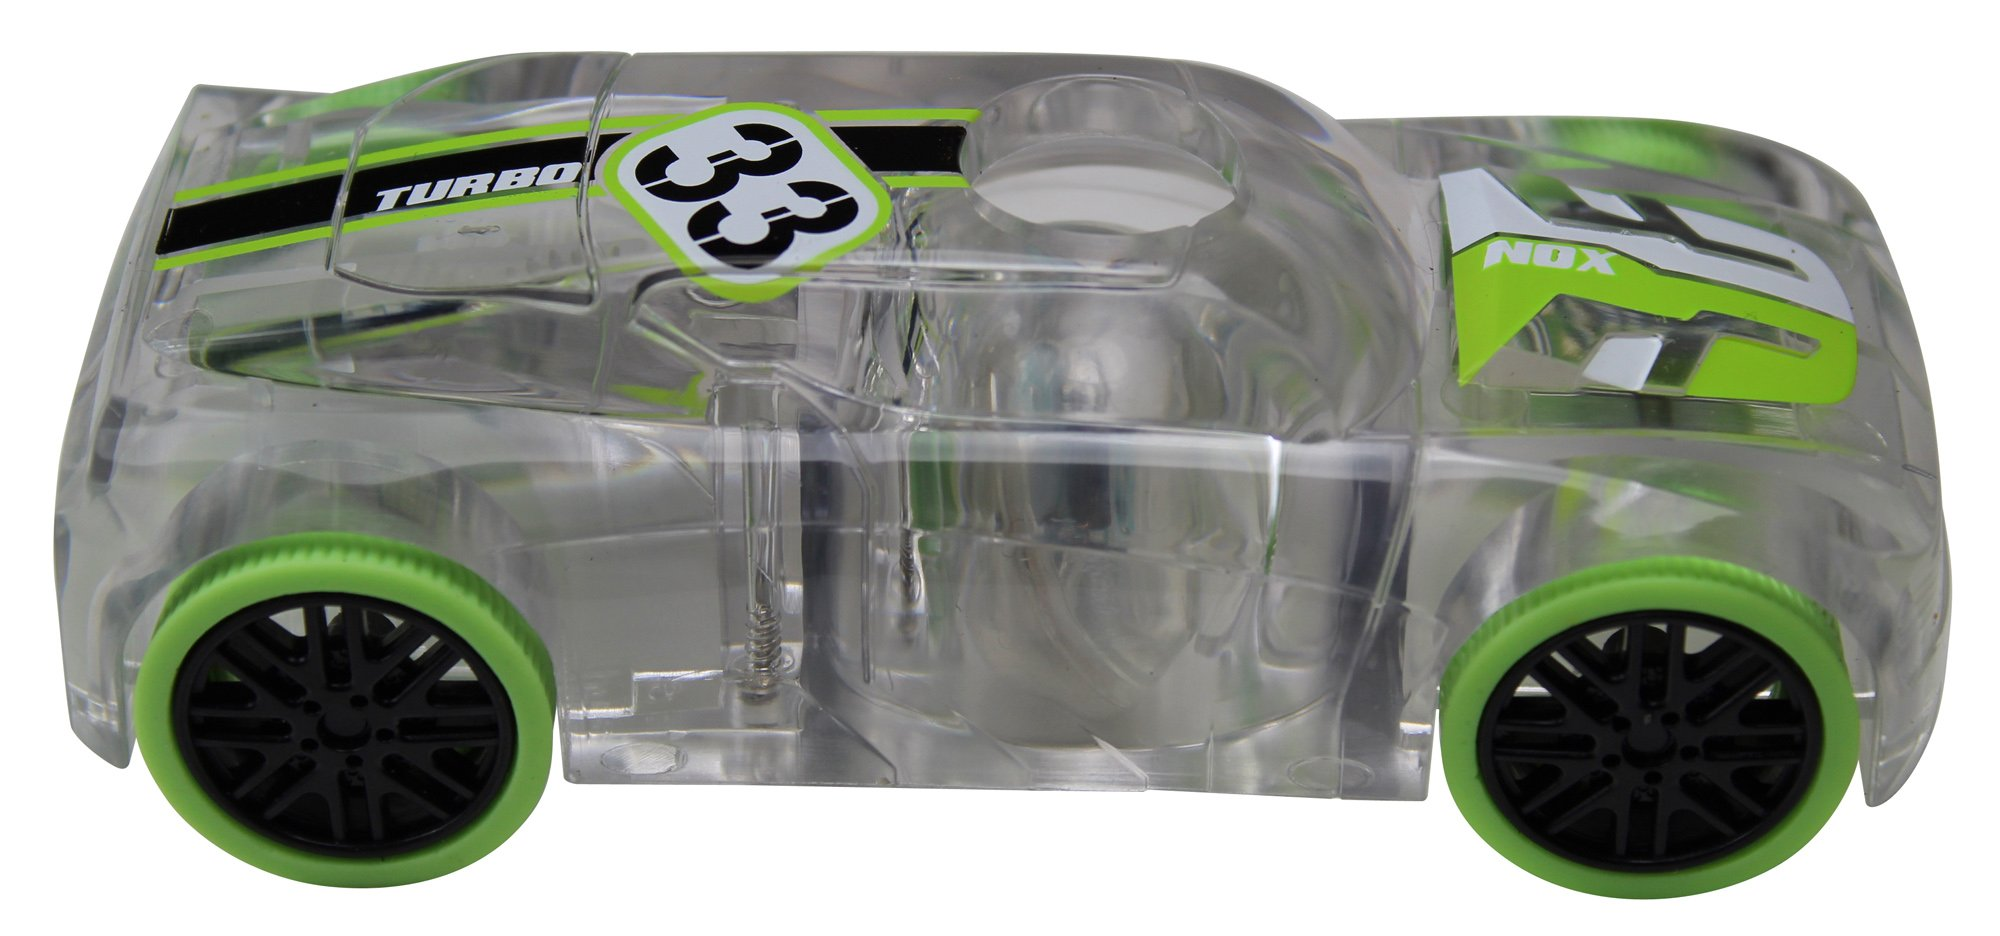 Award Winning Marble Racers Light Up 1:43 Scale Race Car with Quick Shot Pull-Back Motor with Green Wheels